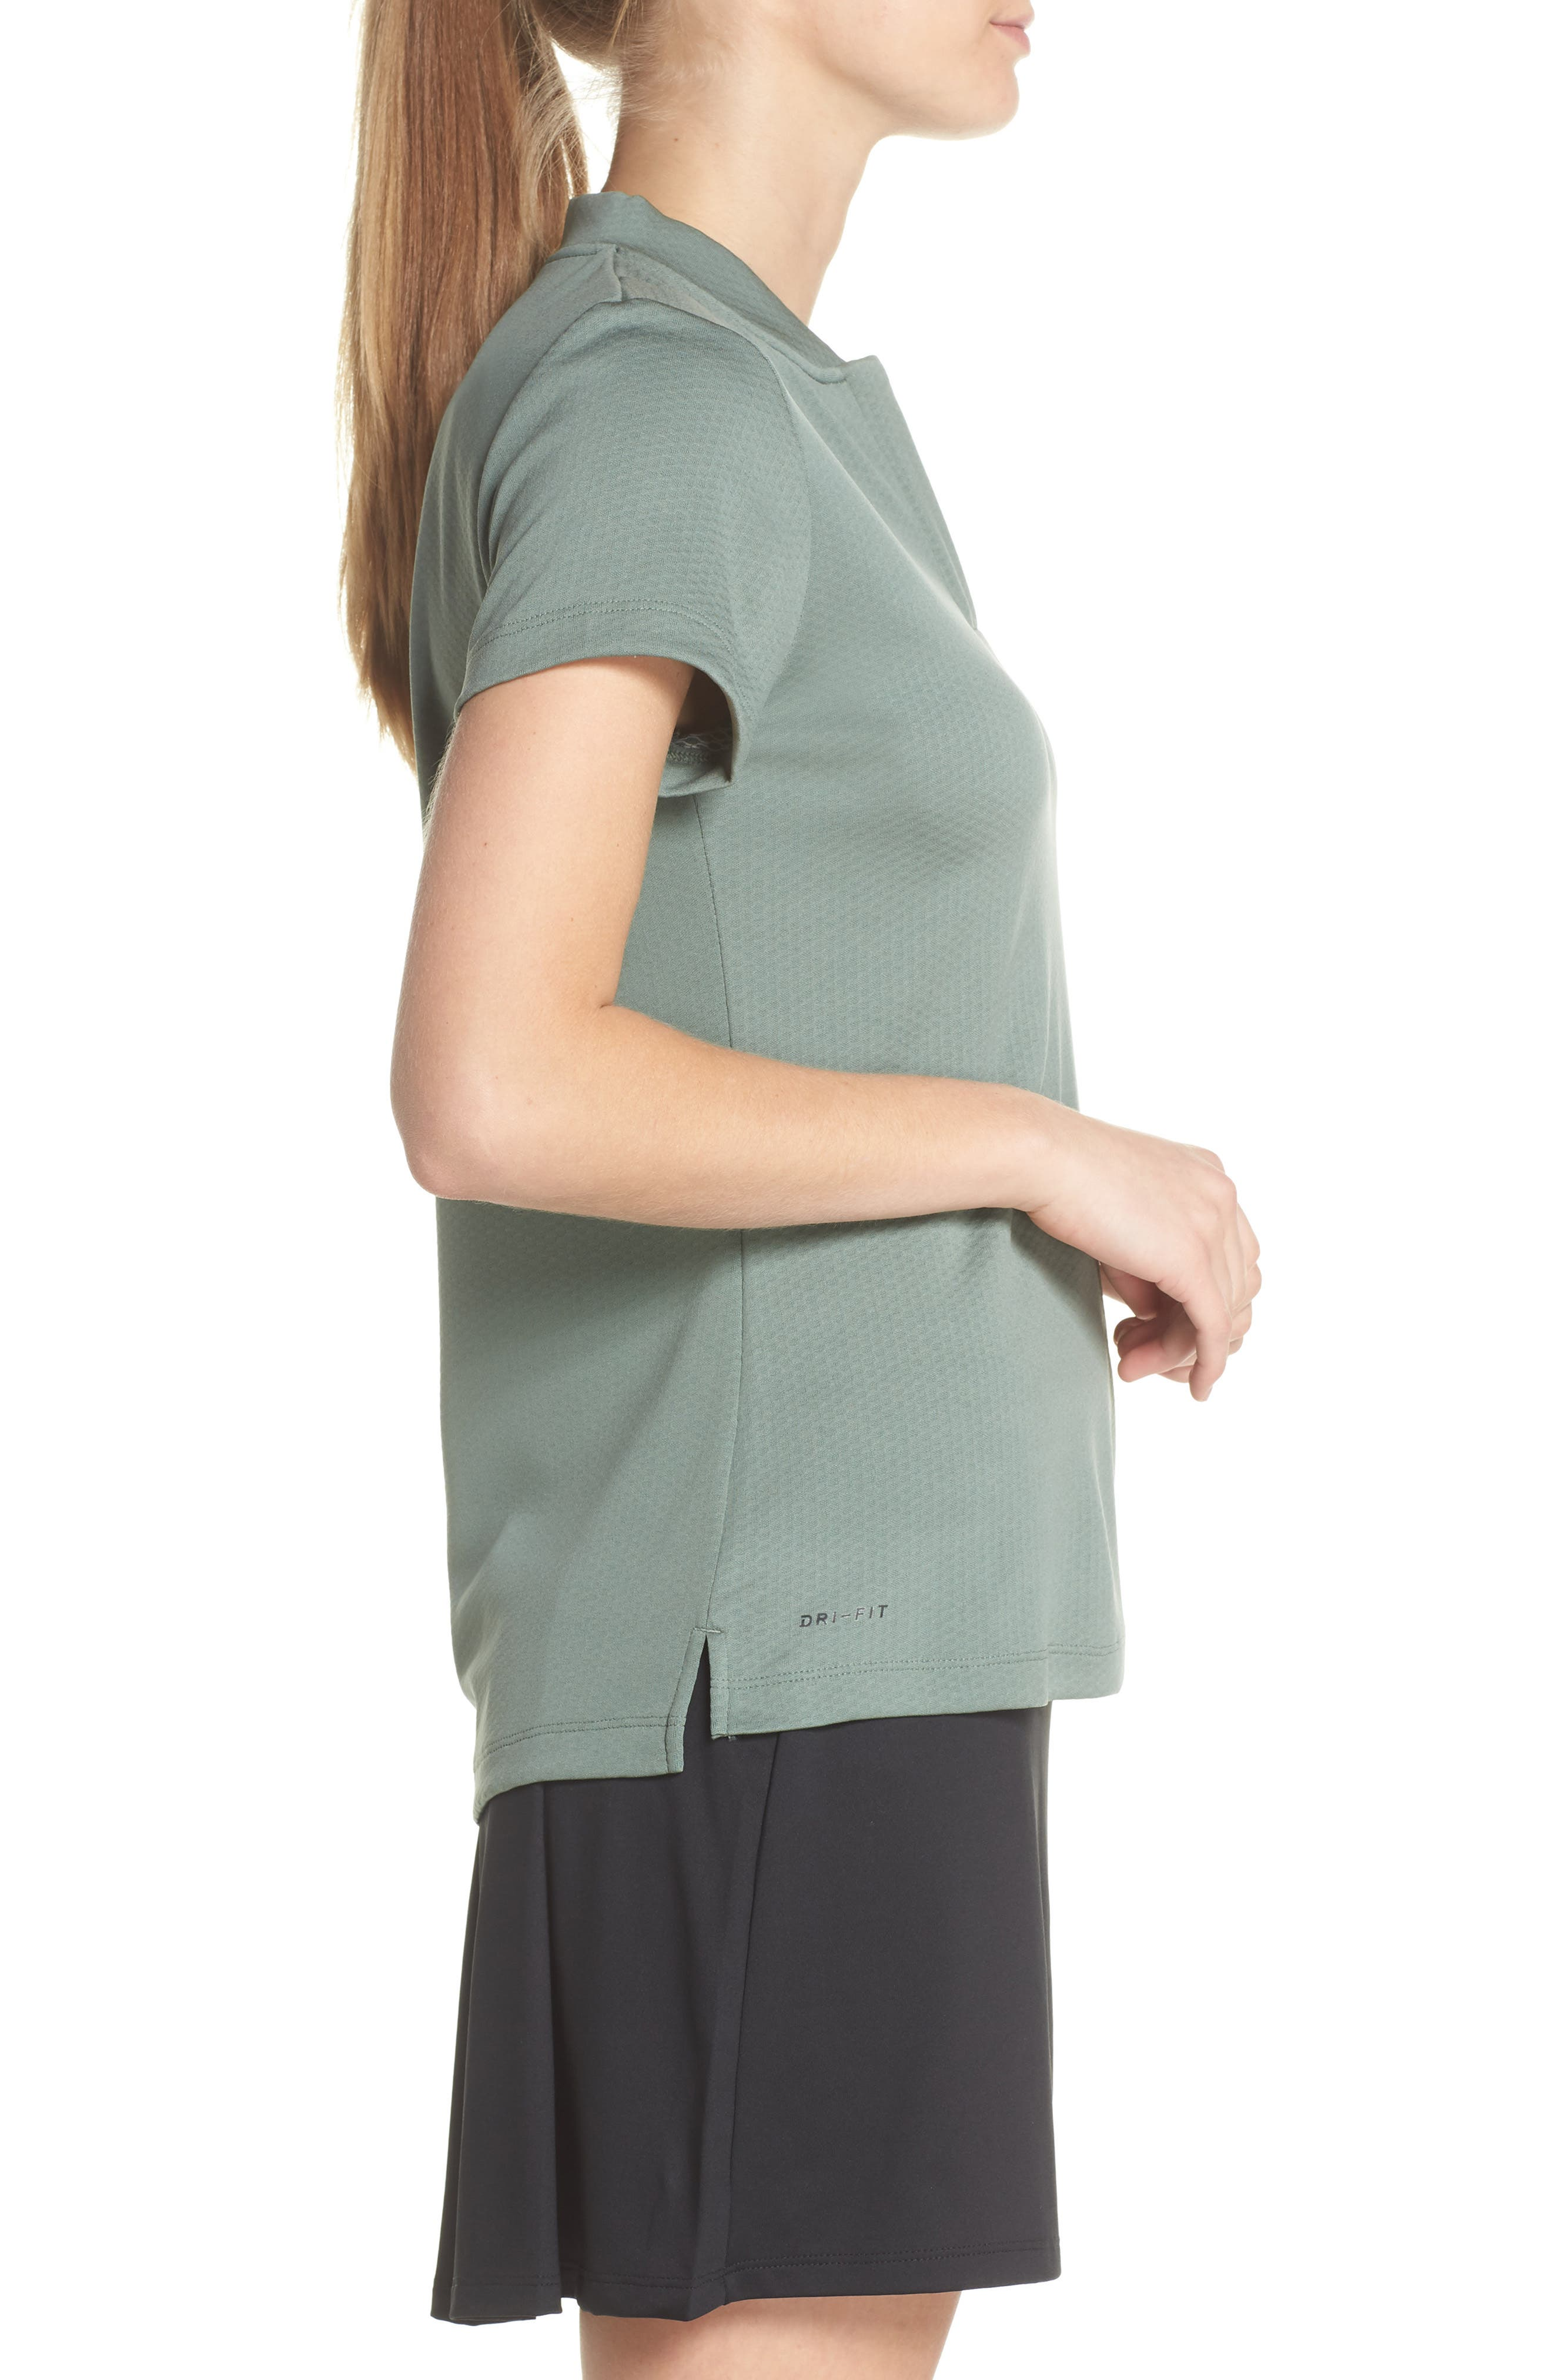 Dry Gold Polo,                             Alternate thumbnail 3, color,                             Clay Green/ Black